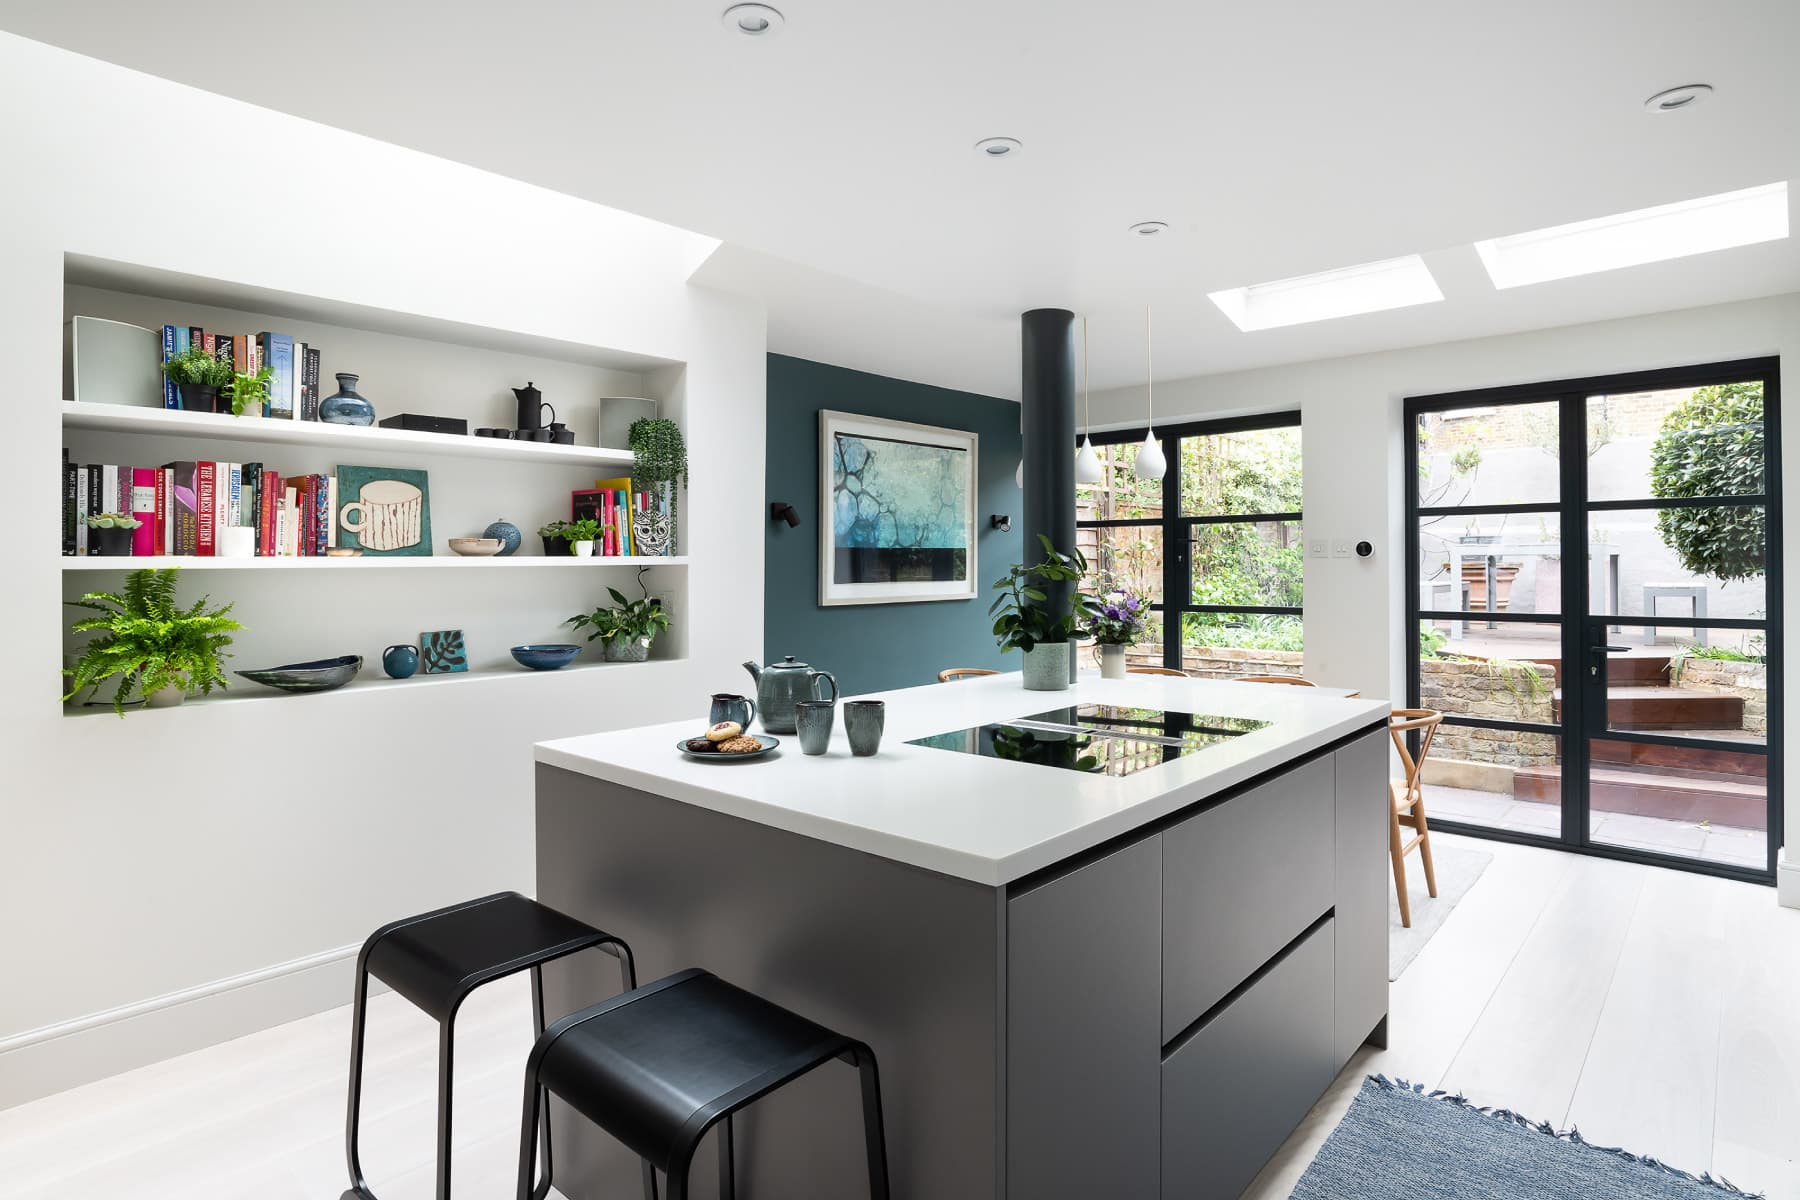 Bespoke kitchen space